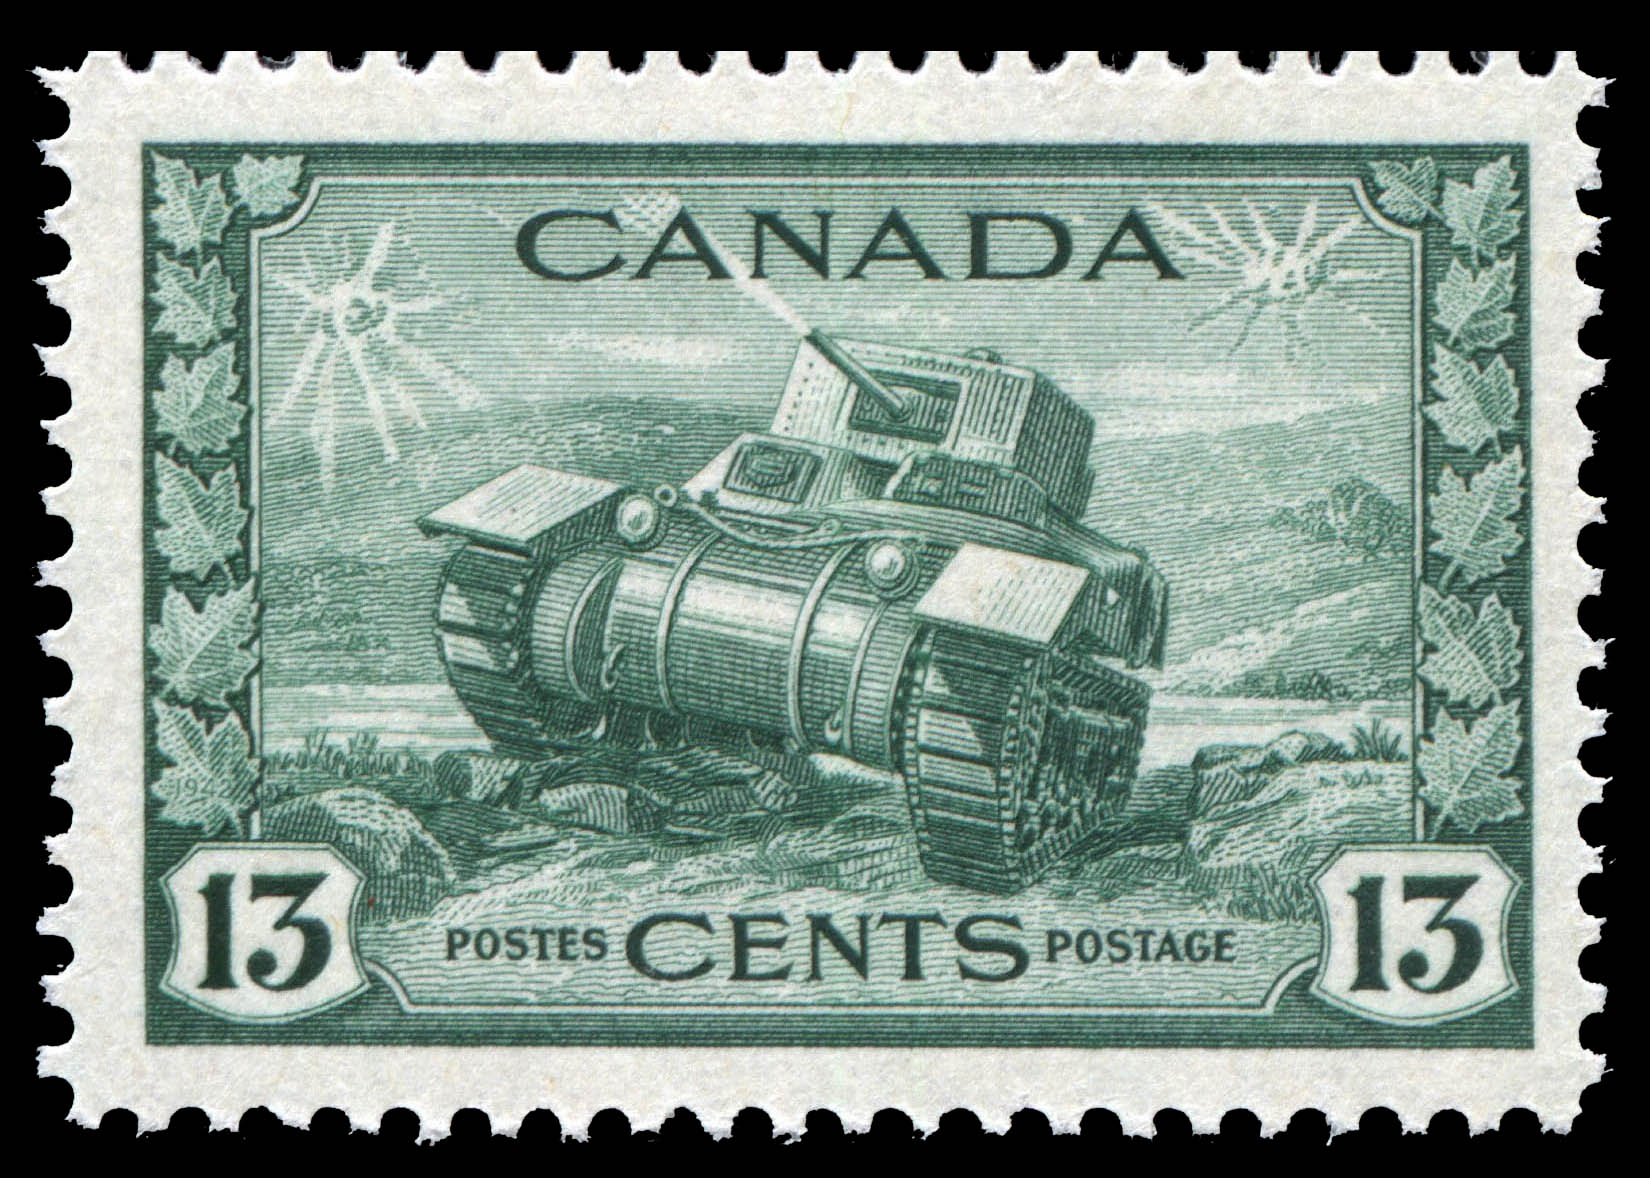 Ram Tank, Canadian Army Canada Postage Stamp